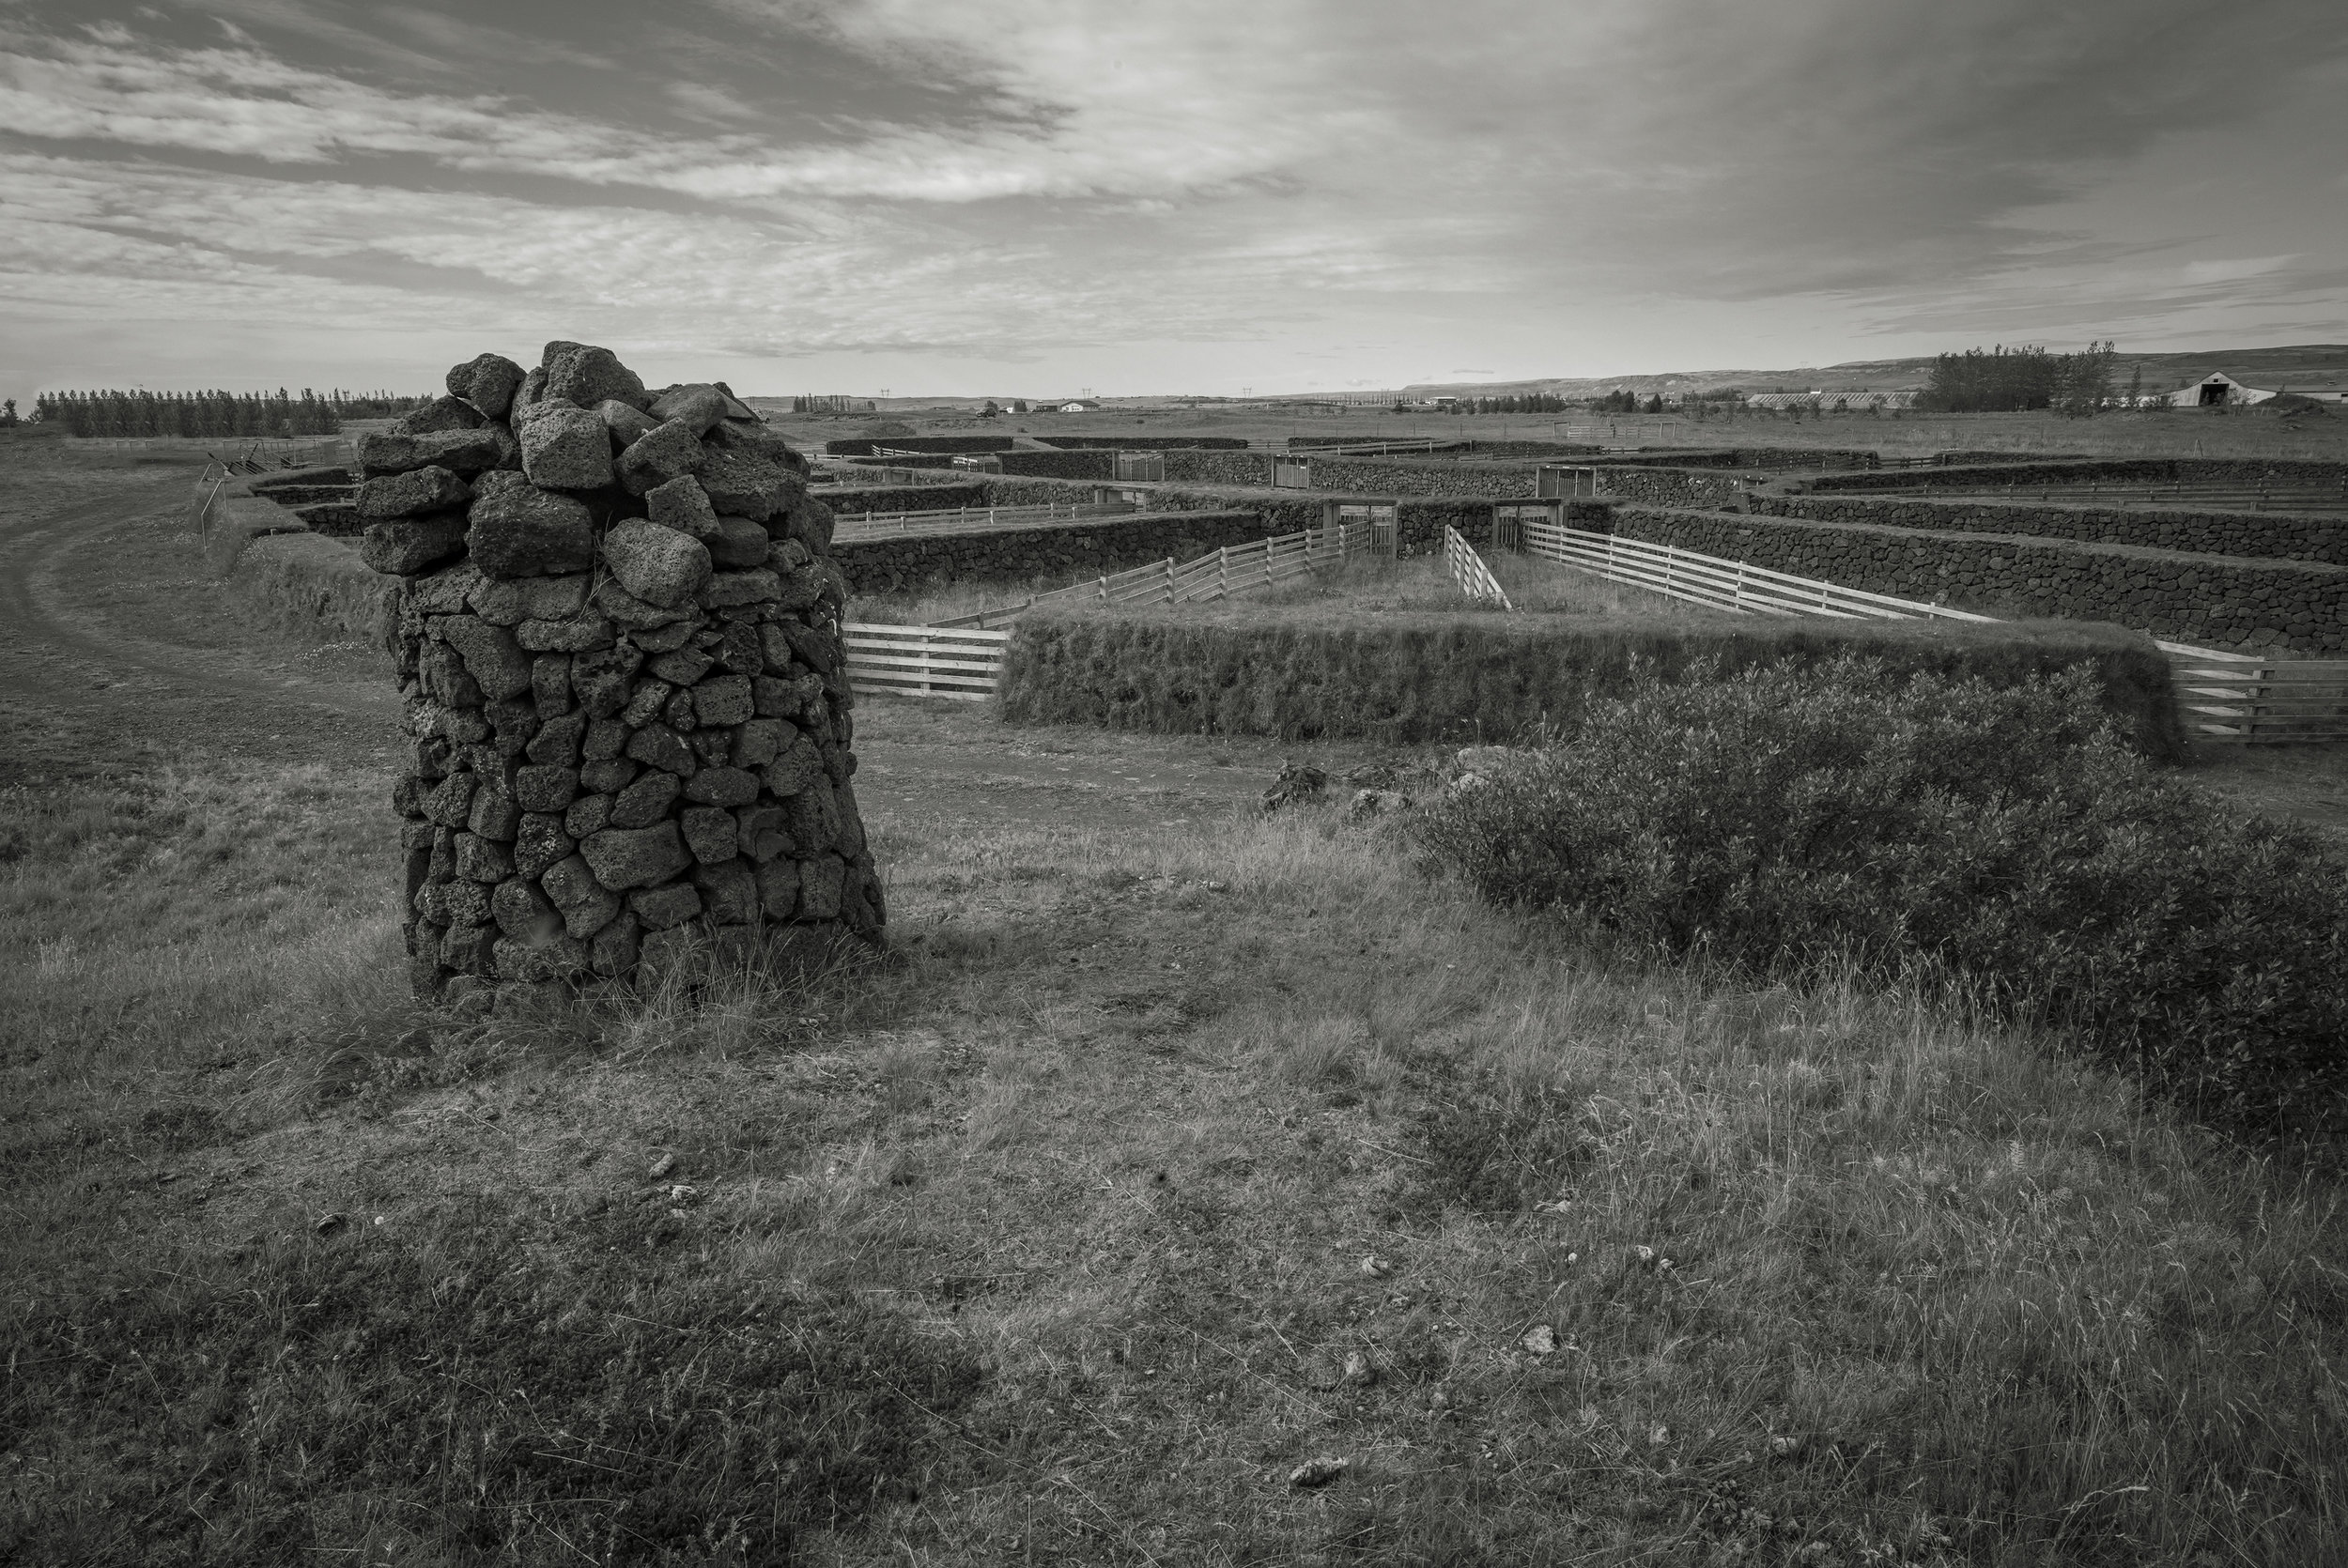 The réttir site showing the two rings and fences for sorting the sheep.